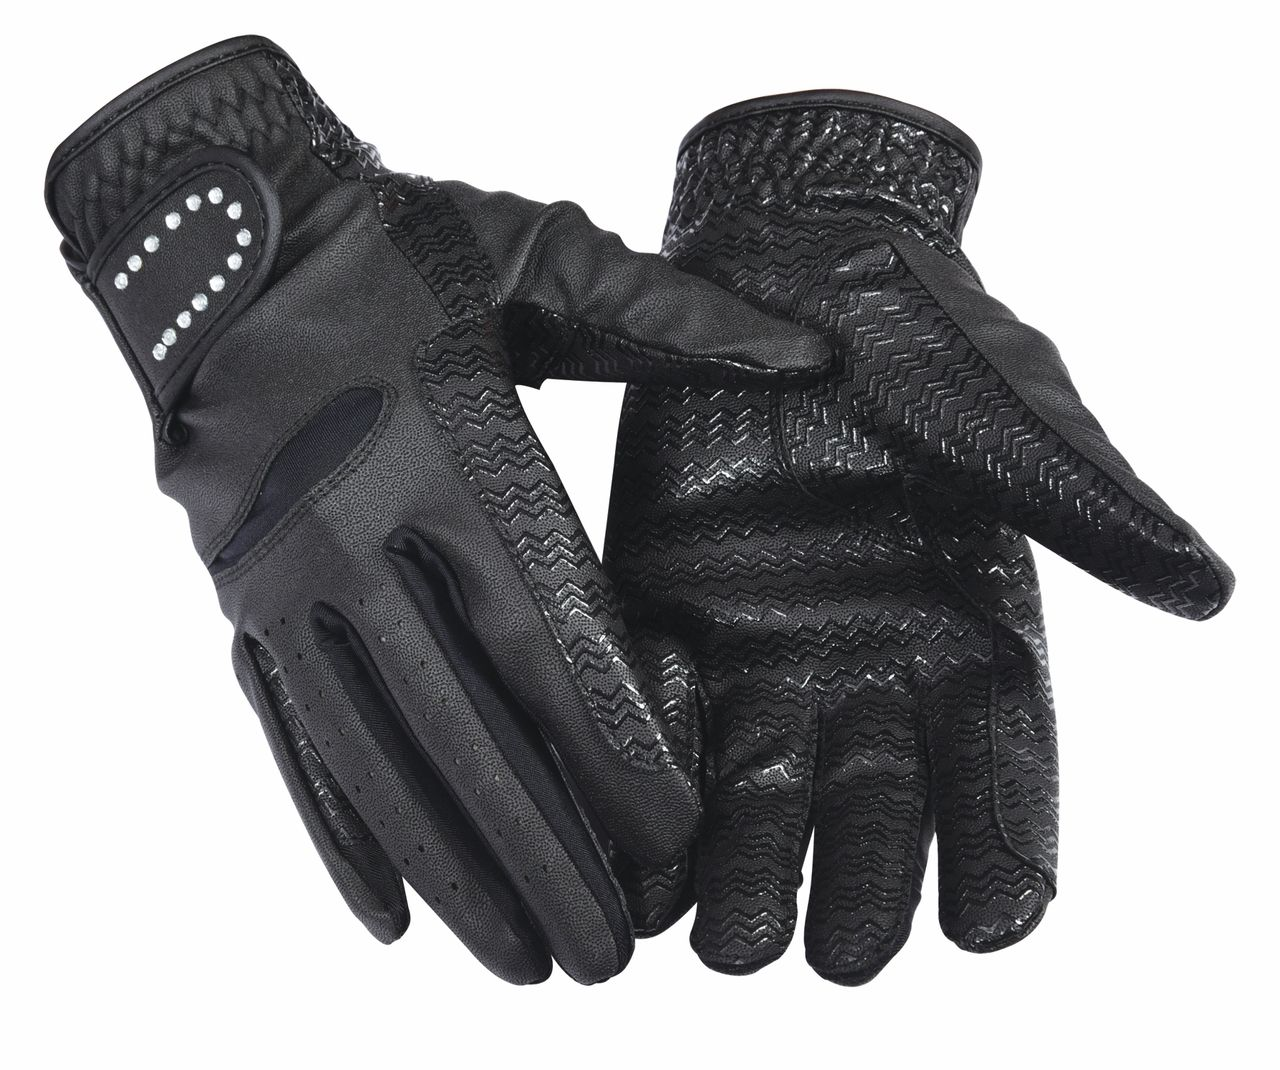 Pin It For Later Find Out More Horseback Riding Gear Kids Horse Riding Gloves Children Equestrian Kids Gl Horse Riding Gloves Riding Gloves Equestrian Gloves